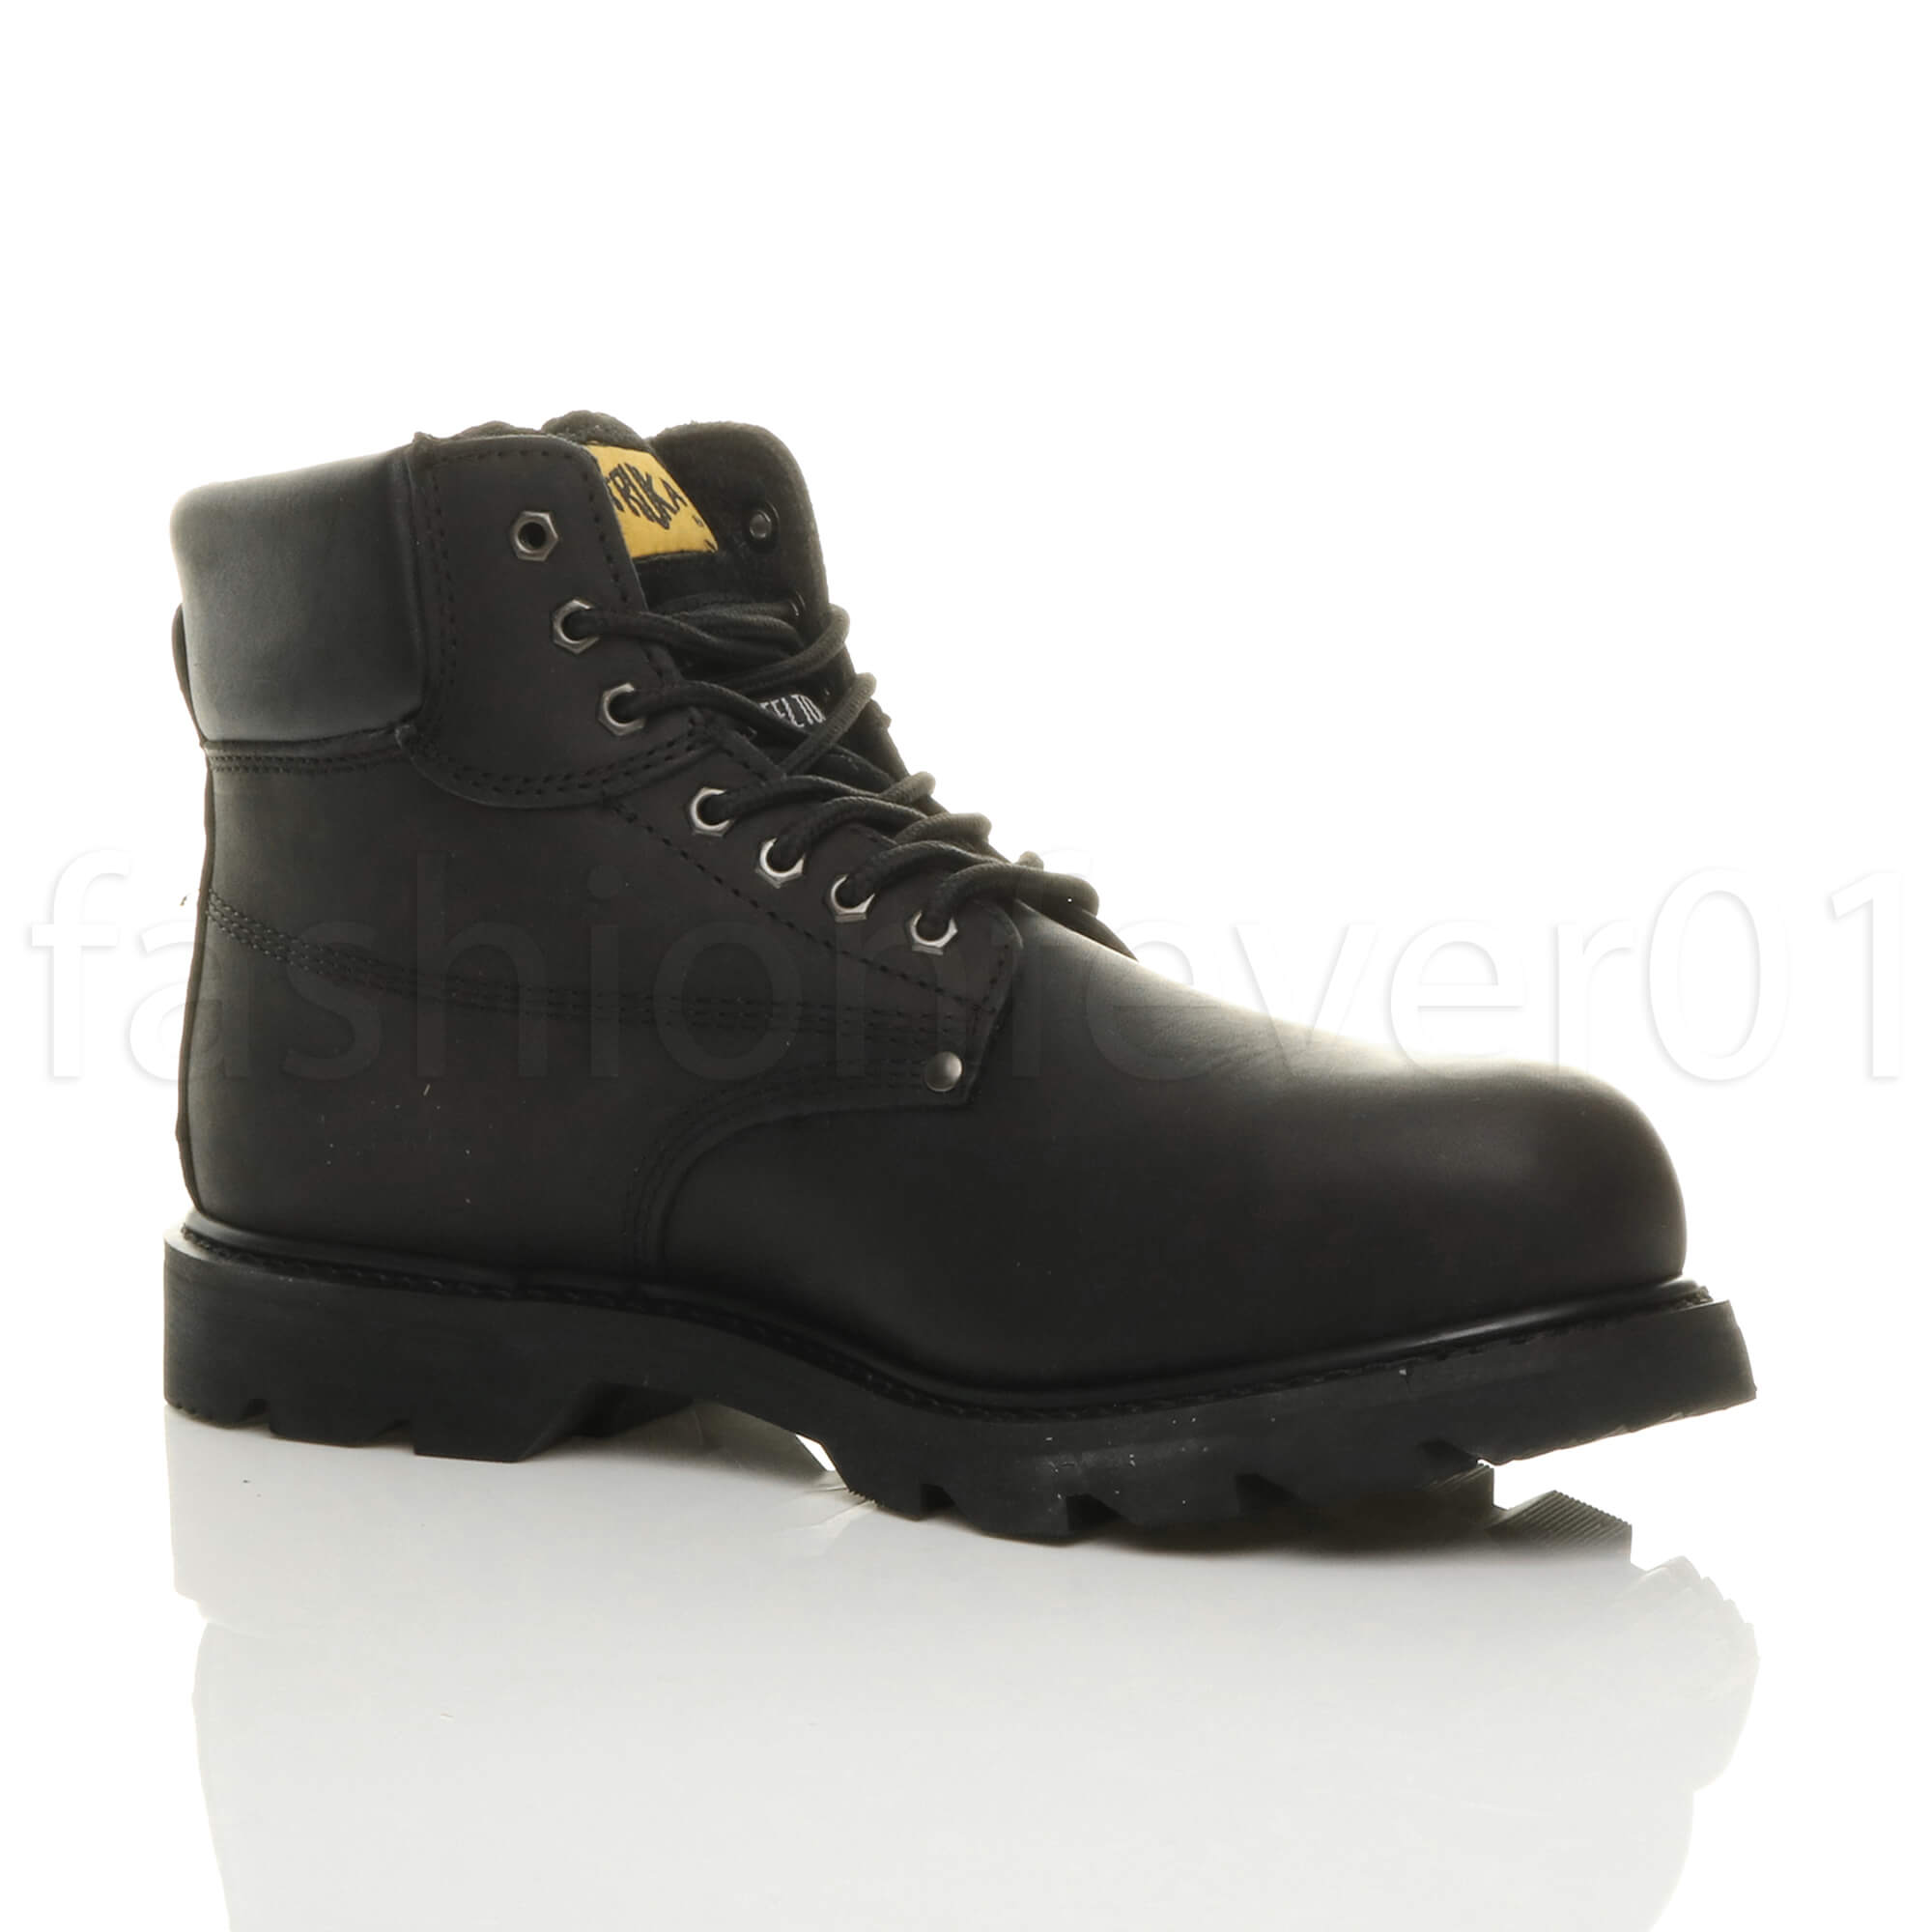 MENS ROUND STEEL TOE CAPPED LACE UP WORK SAFETY OIL RESISTANT BOOTS SIZE 13 47